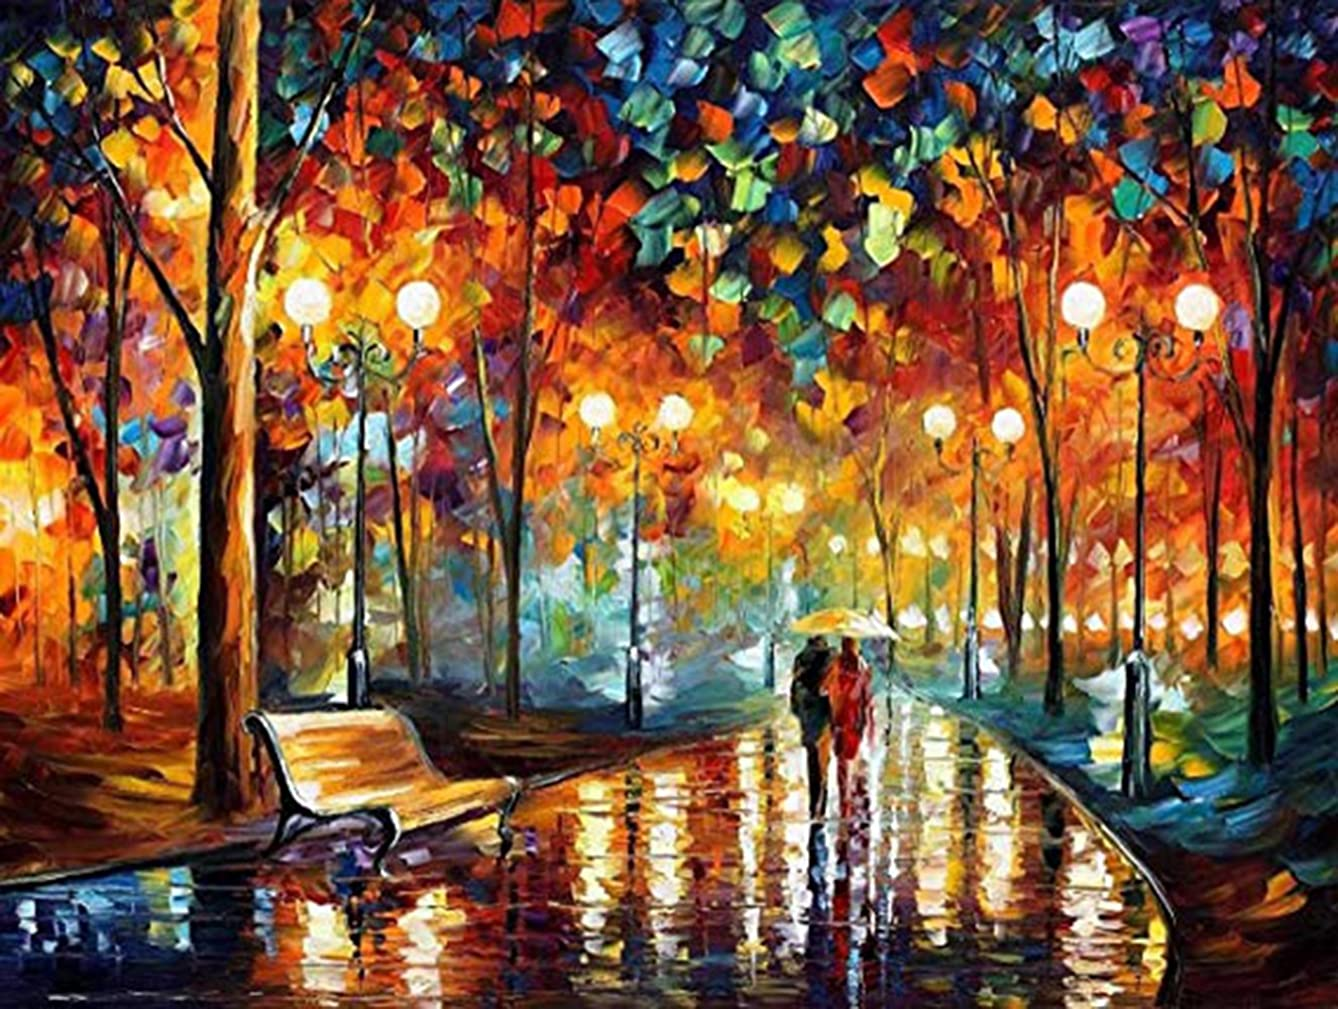 Wooden Framed Paint by Number Kits 12 x 16 inches Canvas DIY Oil Painting for Kids, Students, Adults Beginner with Brushes and Acrylic Paints – Our Romance Under Umbrella (with Framed)